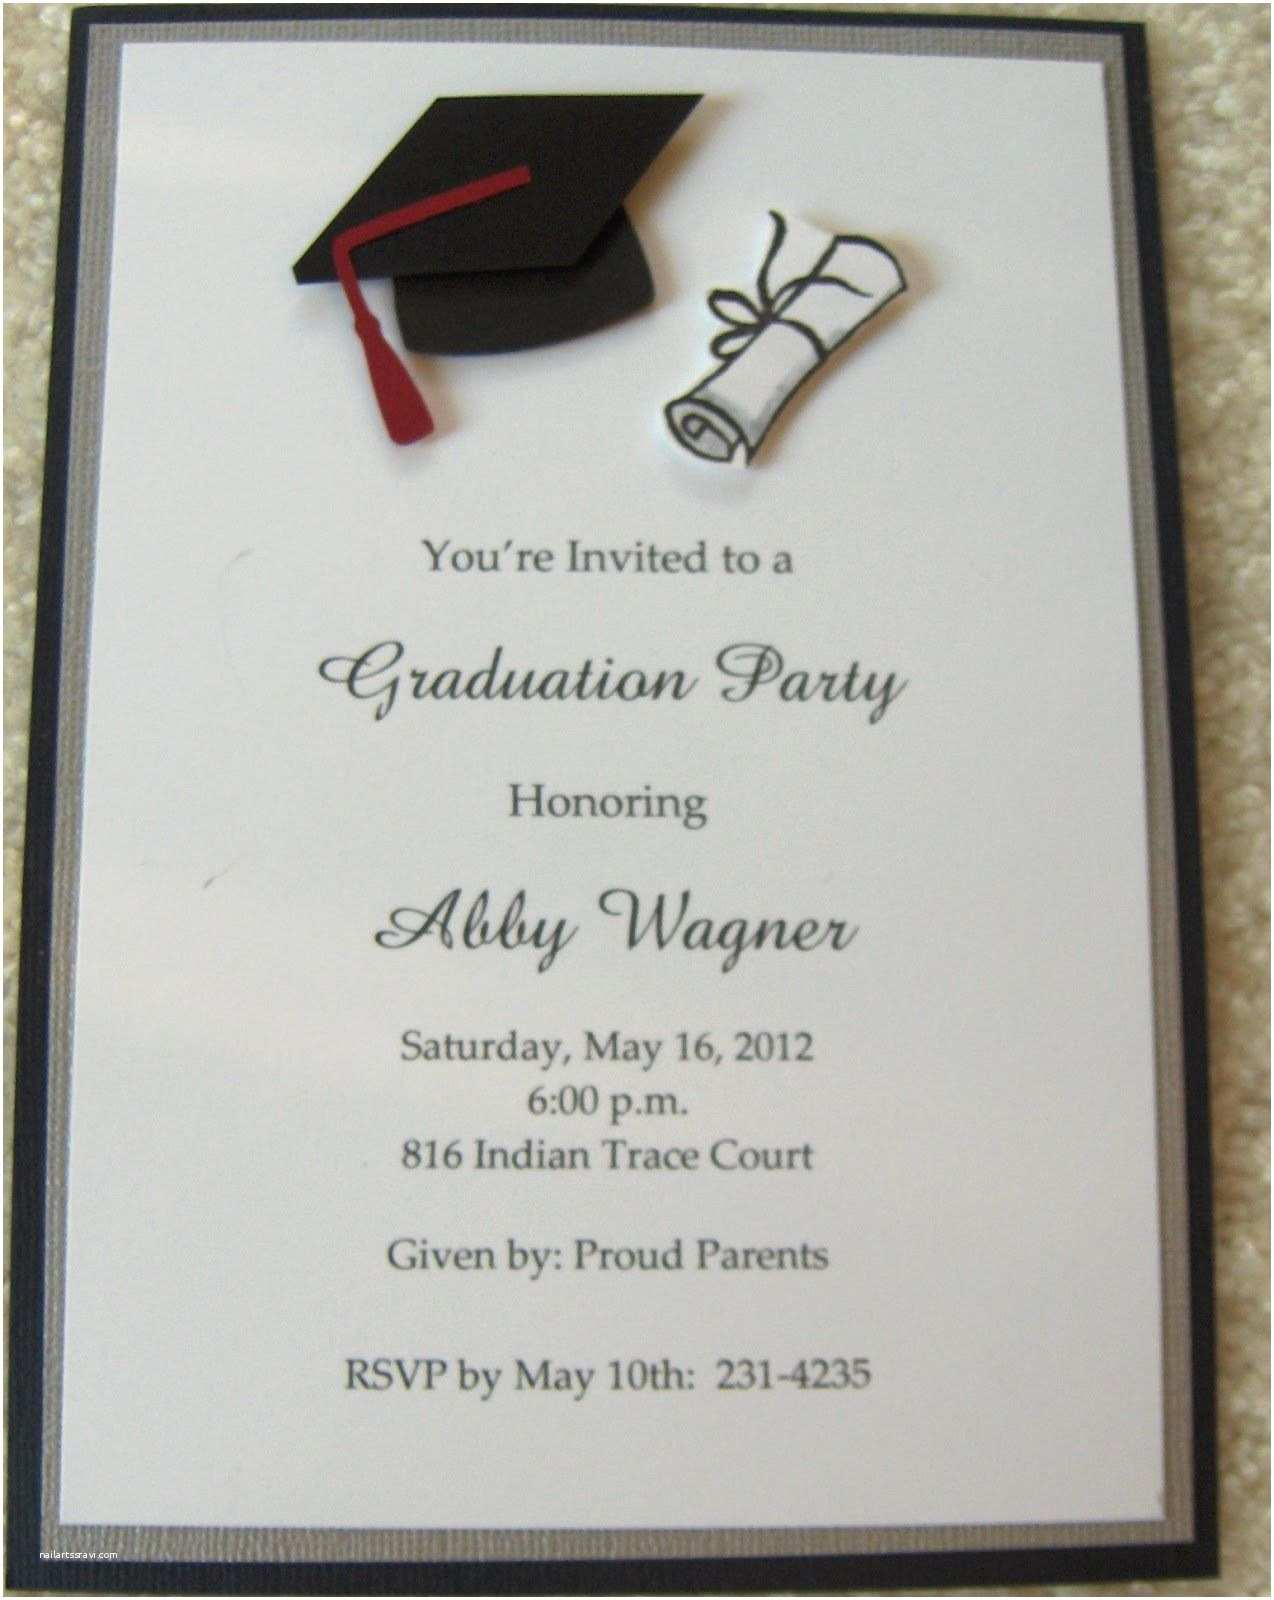 Graduation Party Invitations Graduation Invitations Google Search